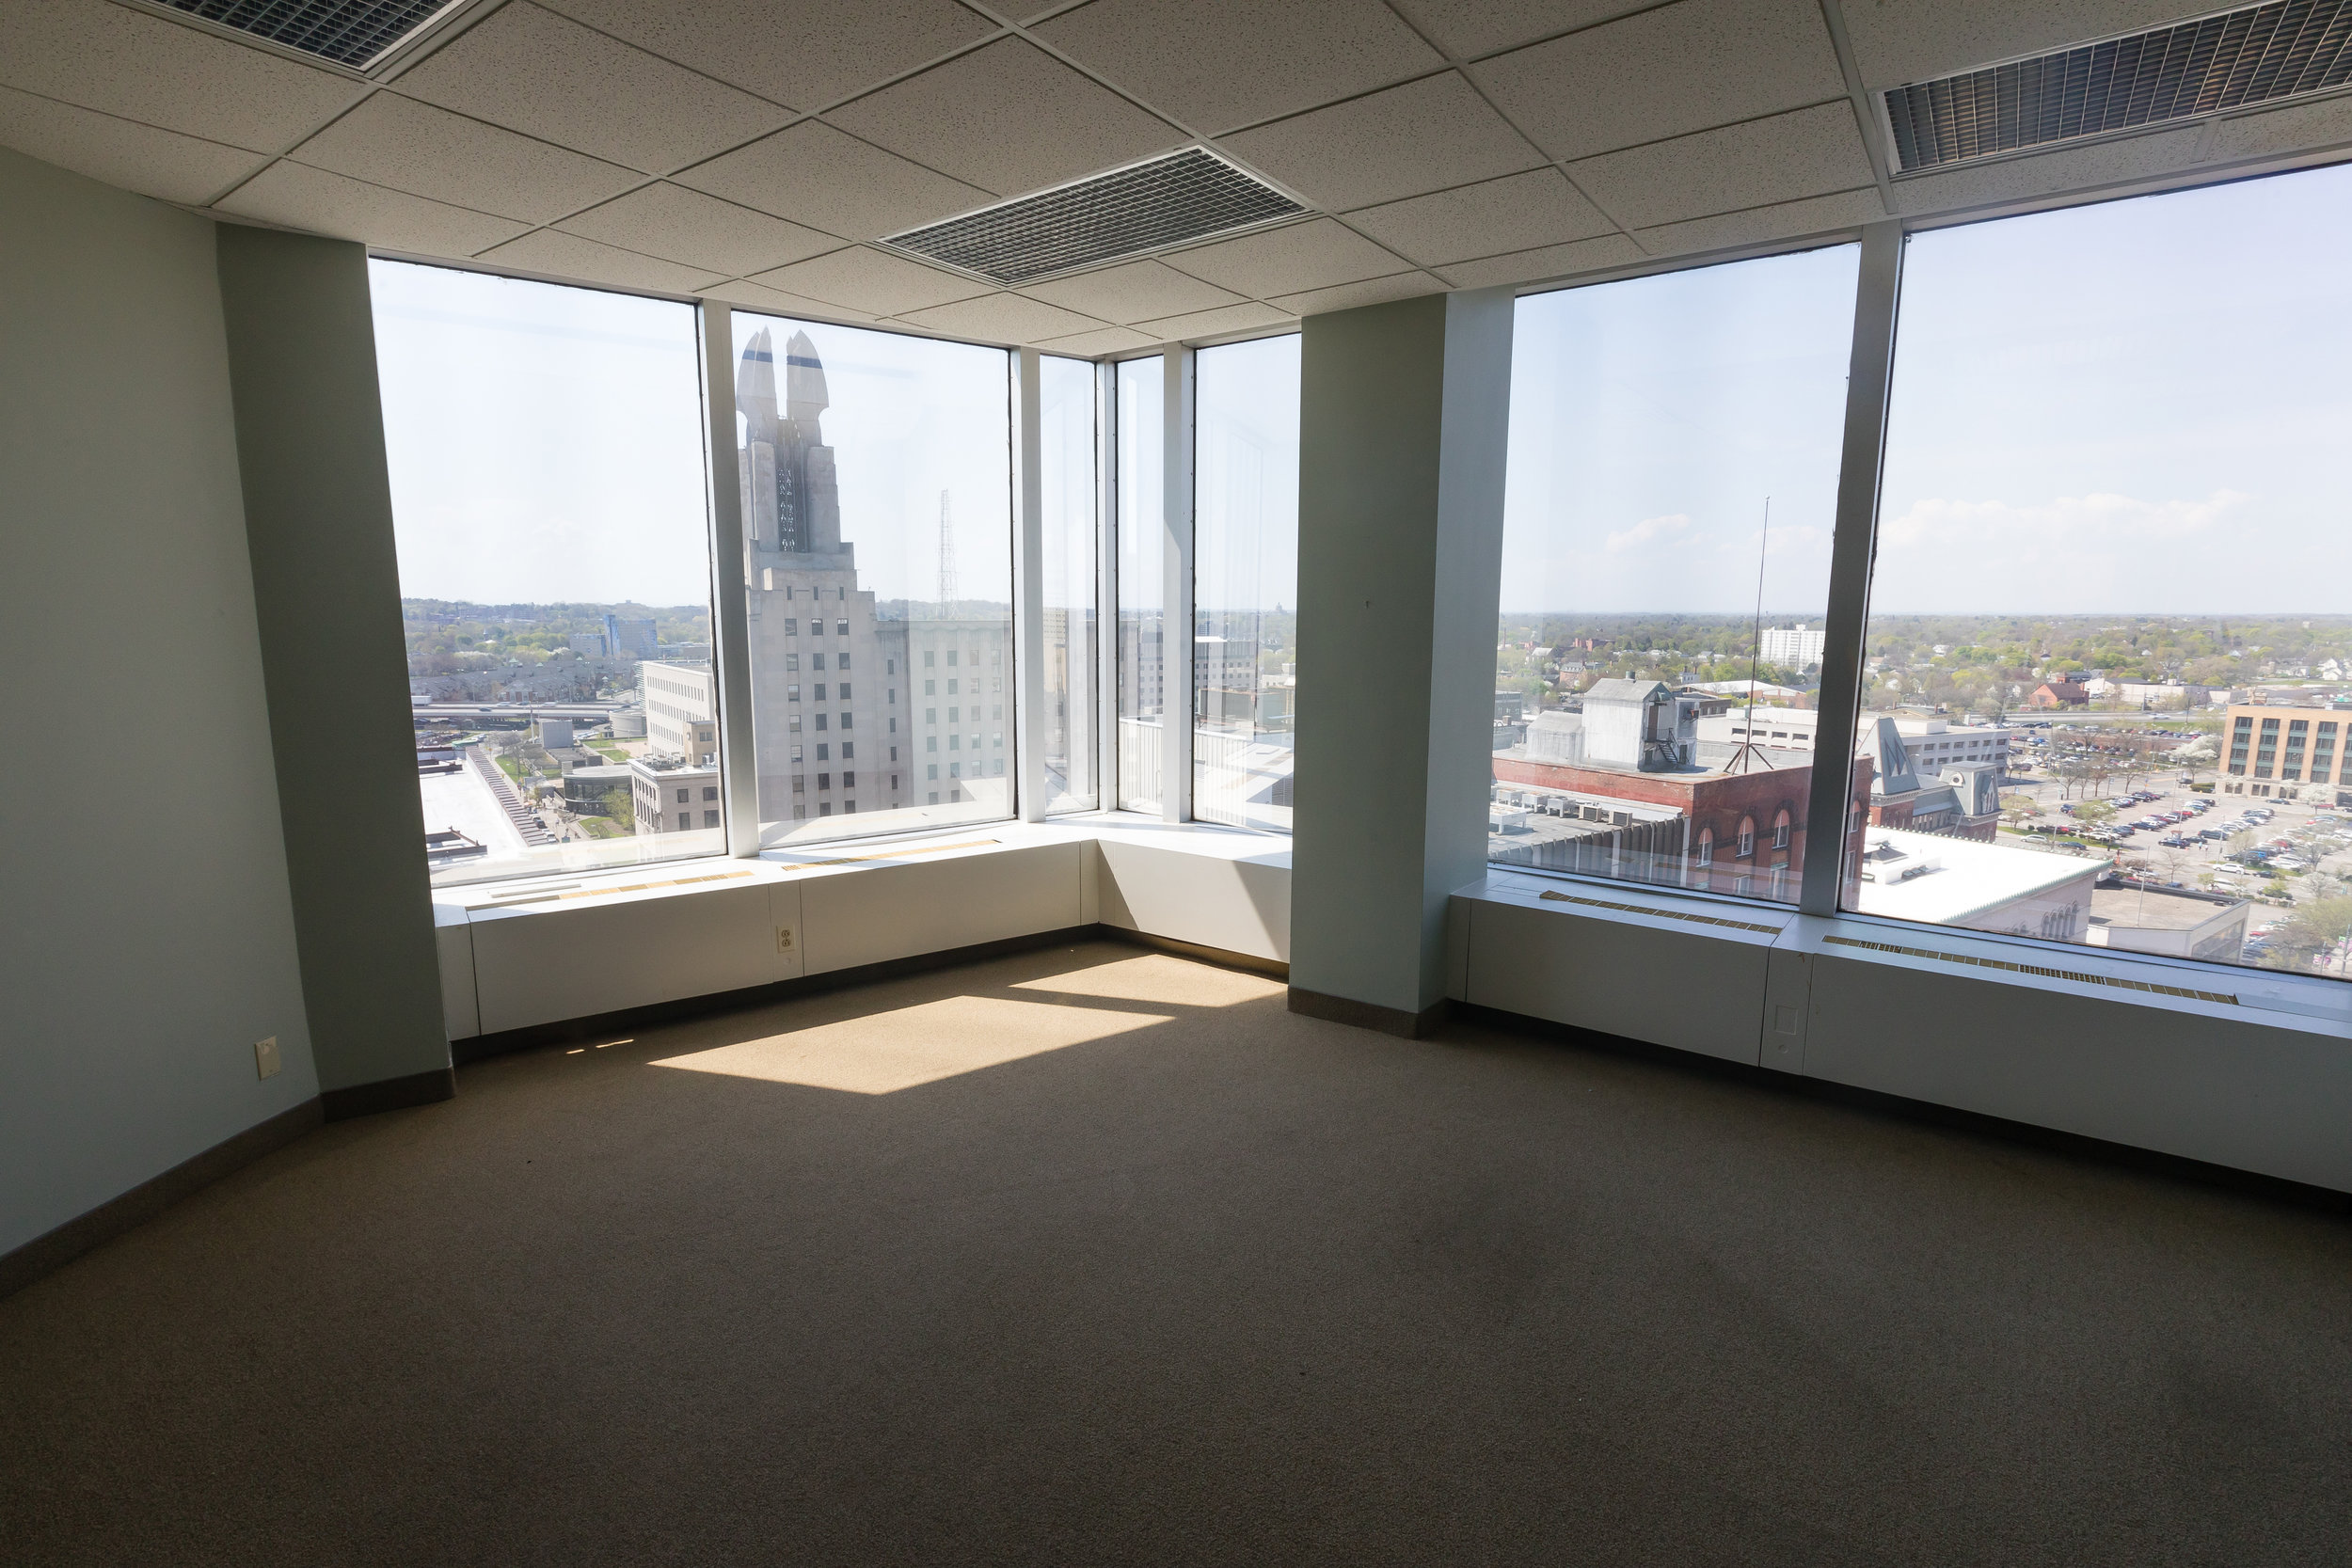 Corner office spaces open in Rochester, New York.